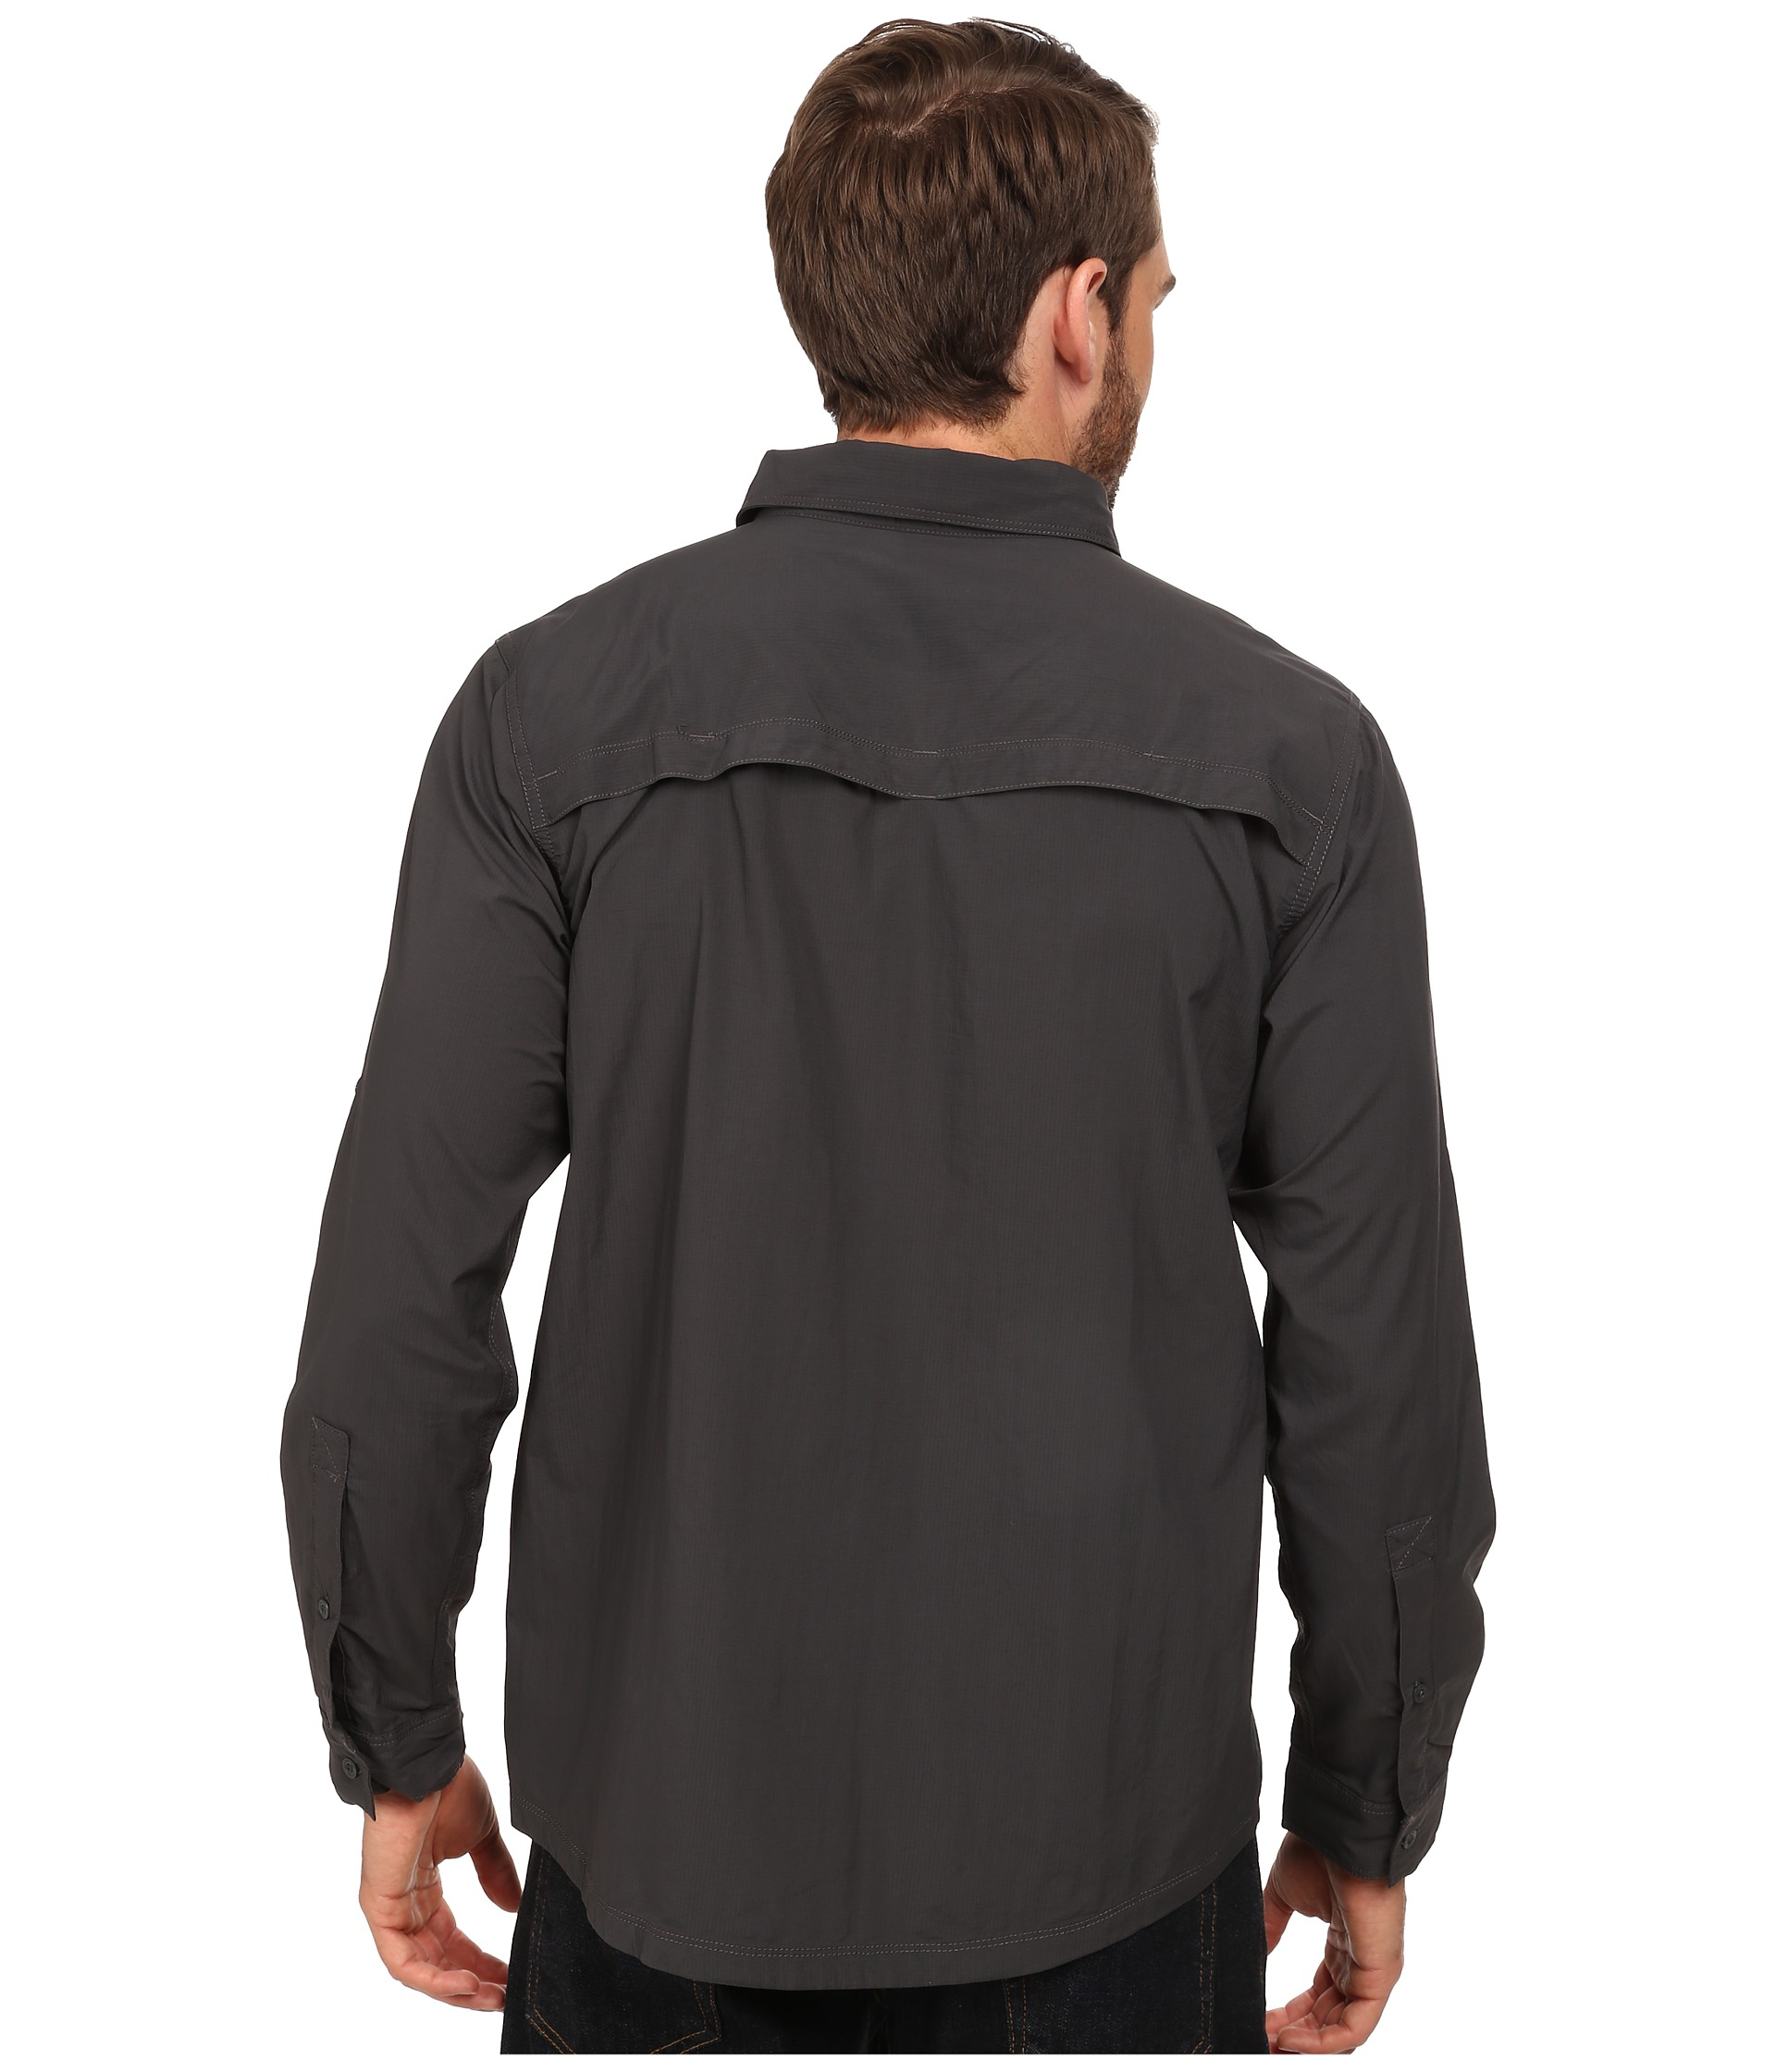 19eaabc545f Lyst - The North Face Long Sleeve Cool Horizon Shirt in Gray